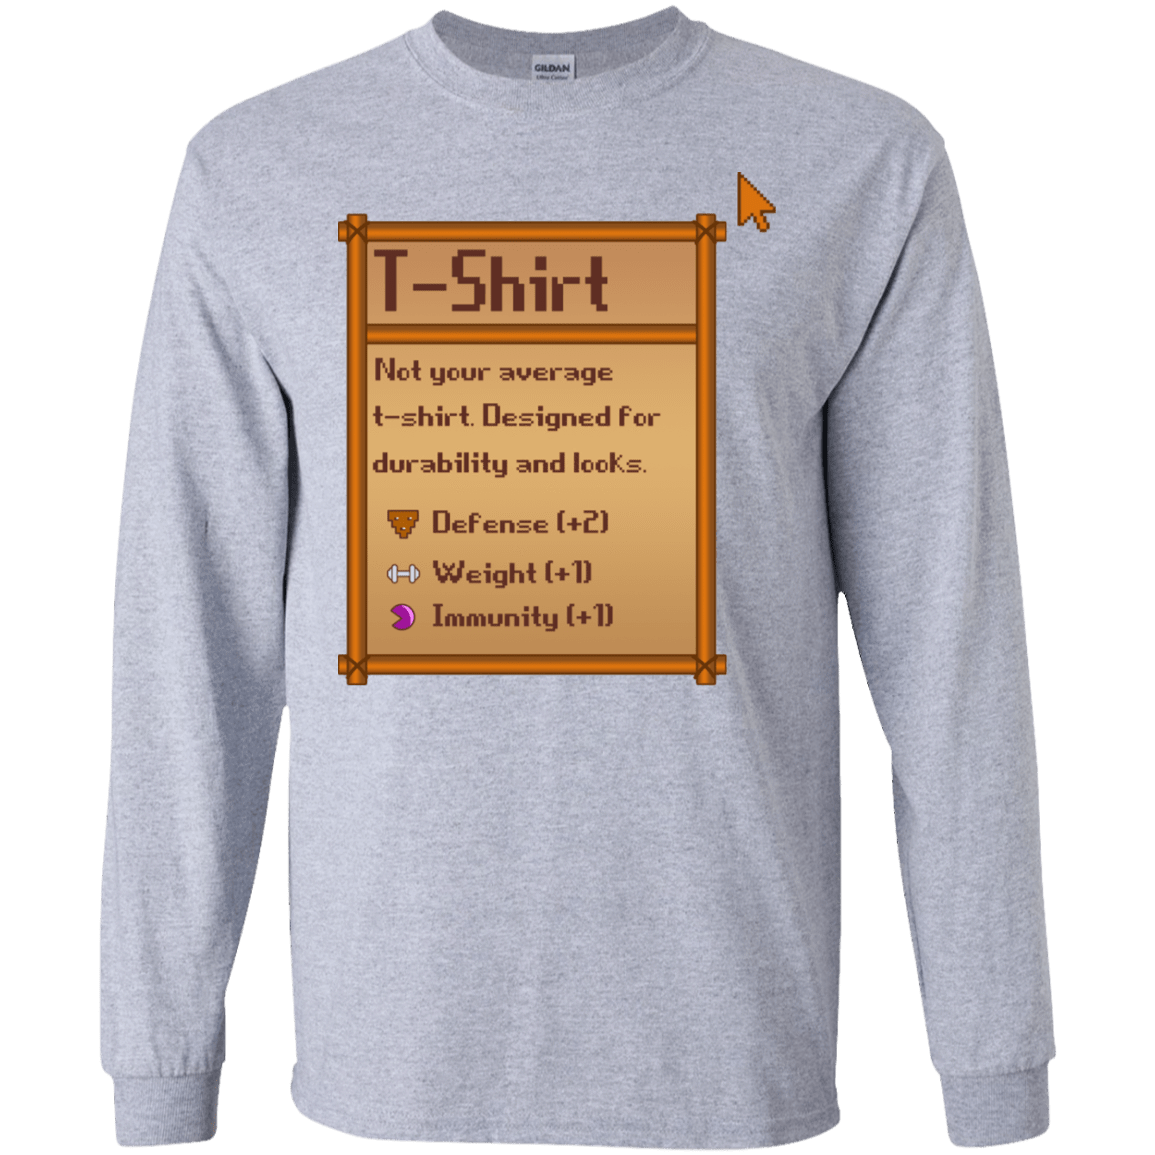 Stardew Valley T-Shirt 30-188-72955964-335 - Tee Ript